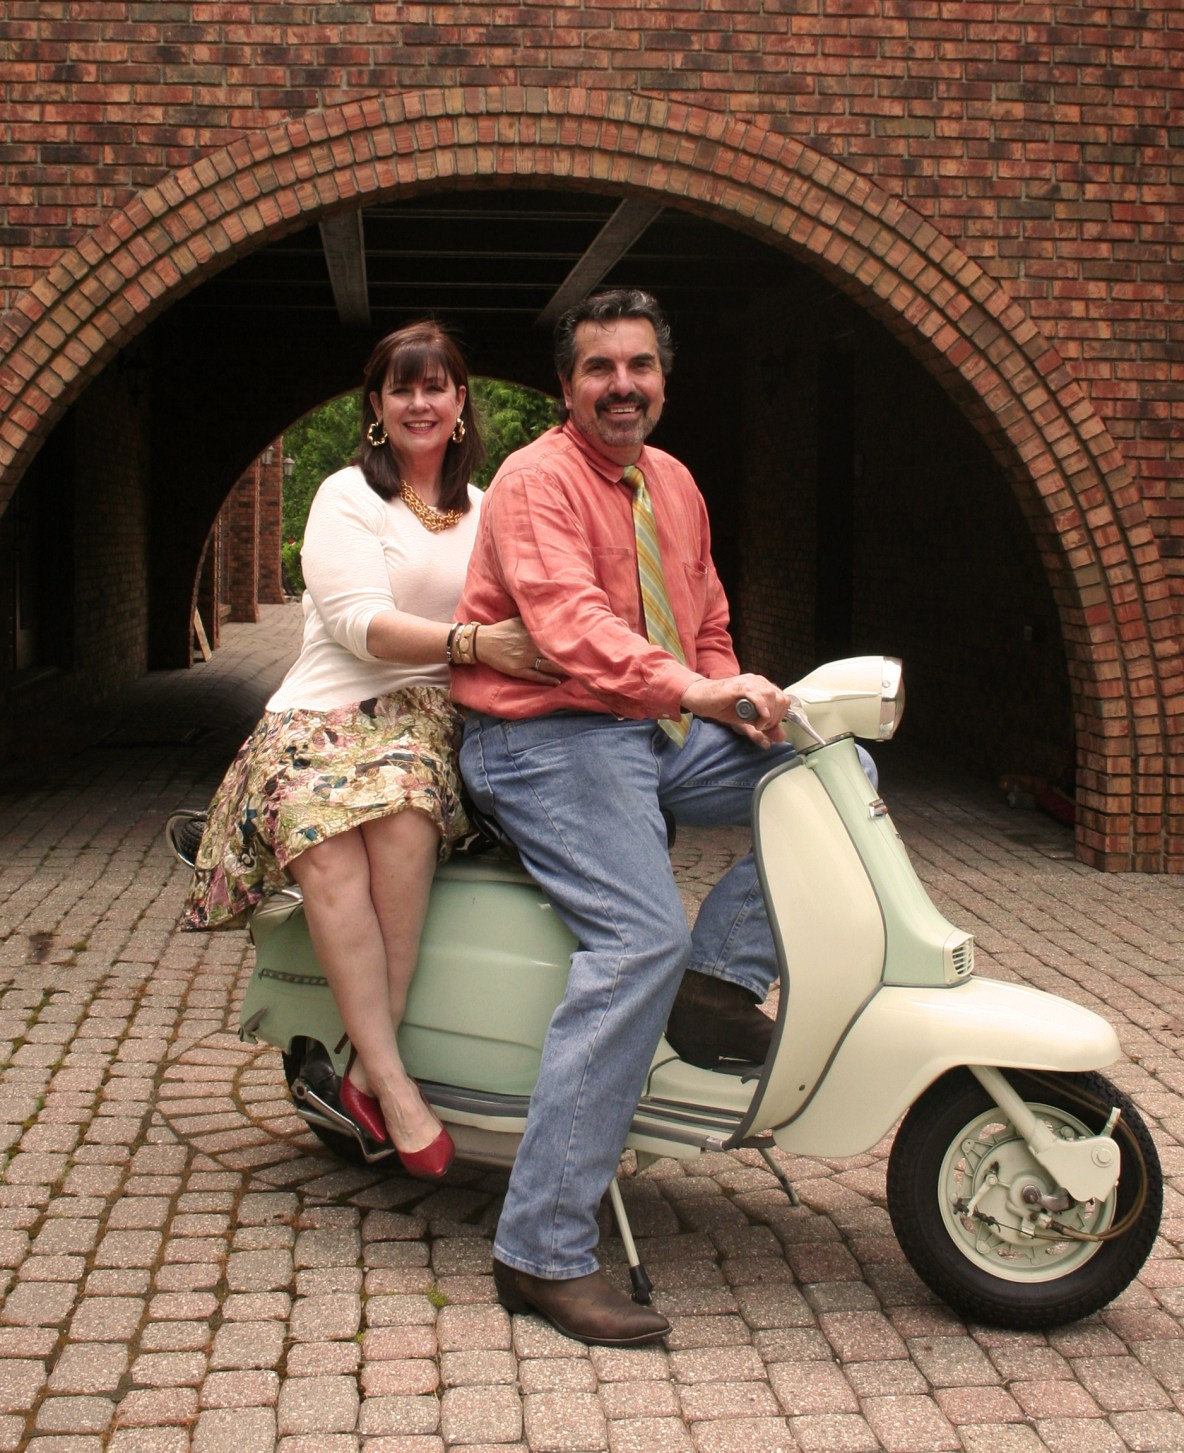 Two people sitting on moped